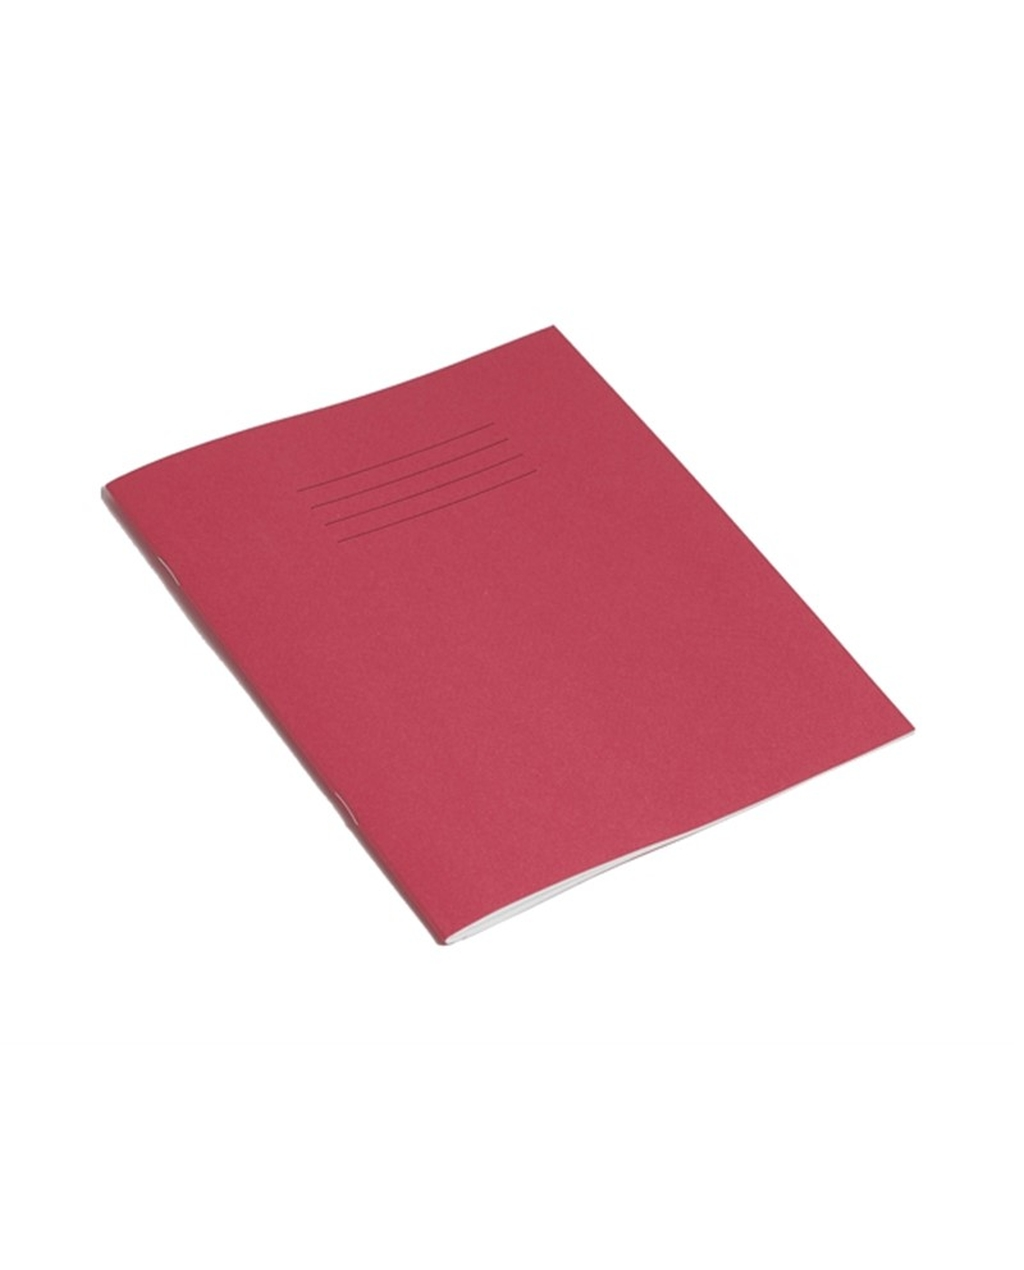 Exercise Book 8 x 6.5 (203 x 165mm) Pink Cover Plain - No Ruling 48 Pages